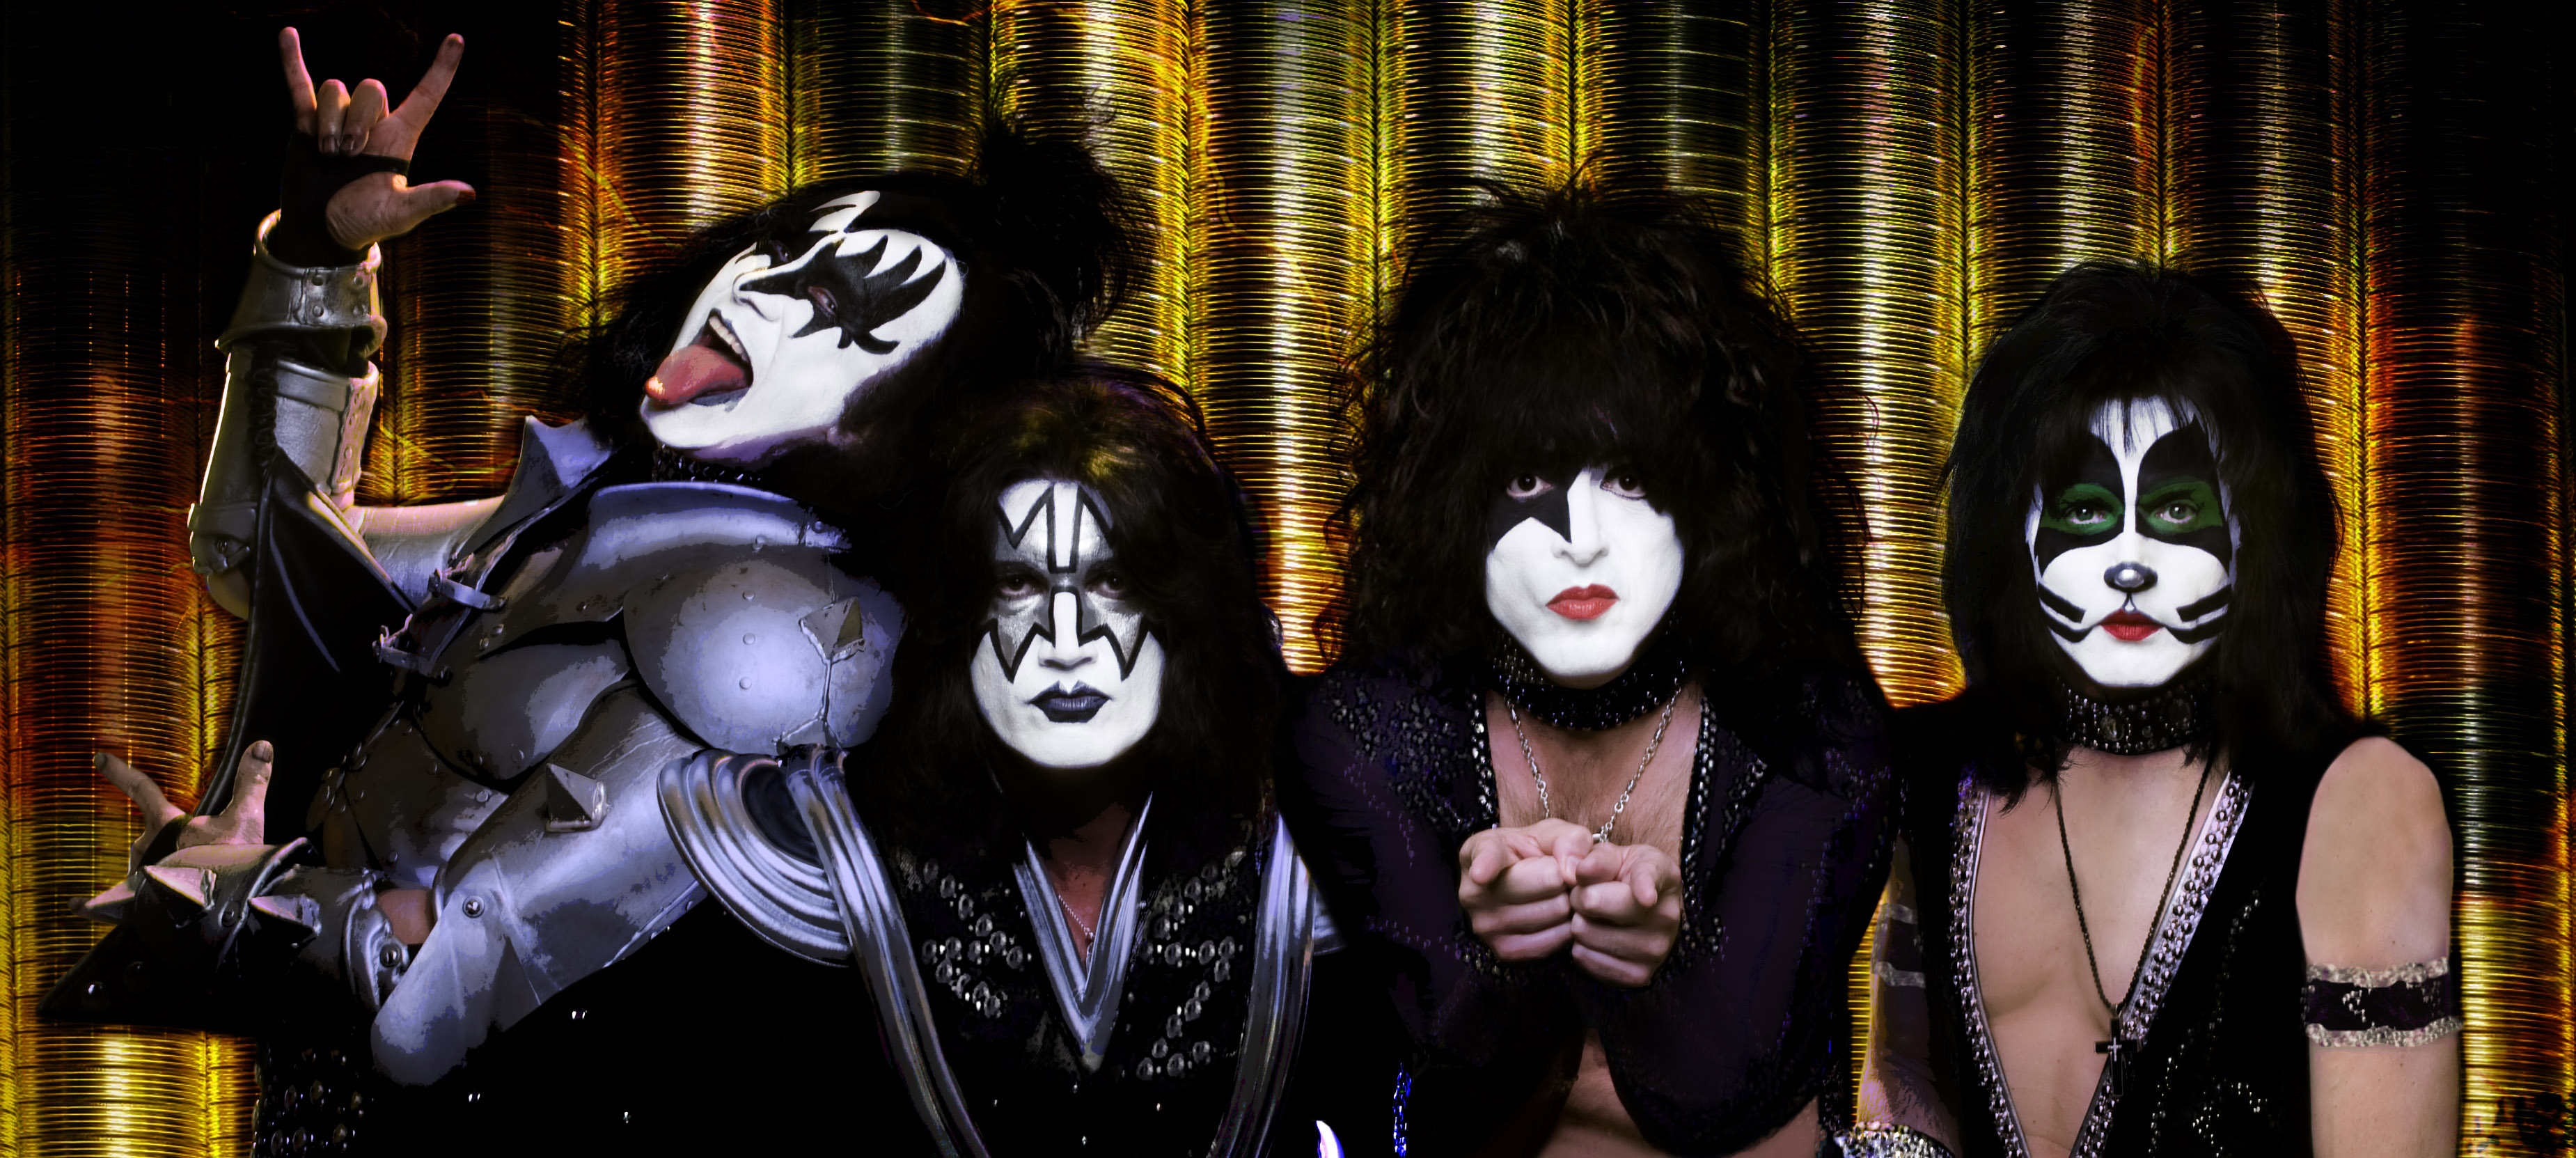 kiss hd 1080p - photo #31